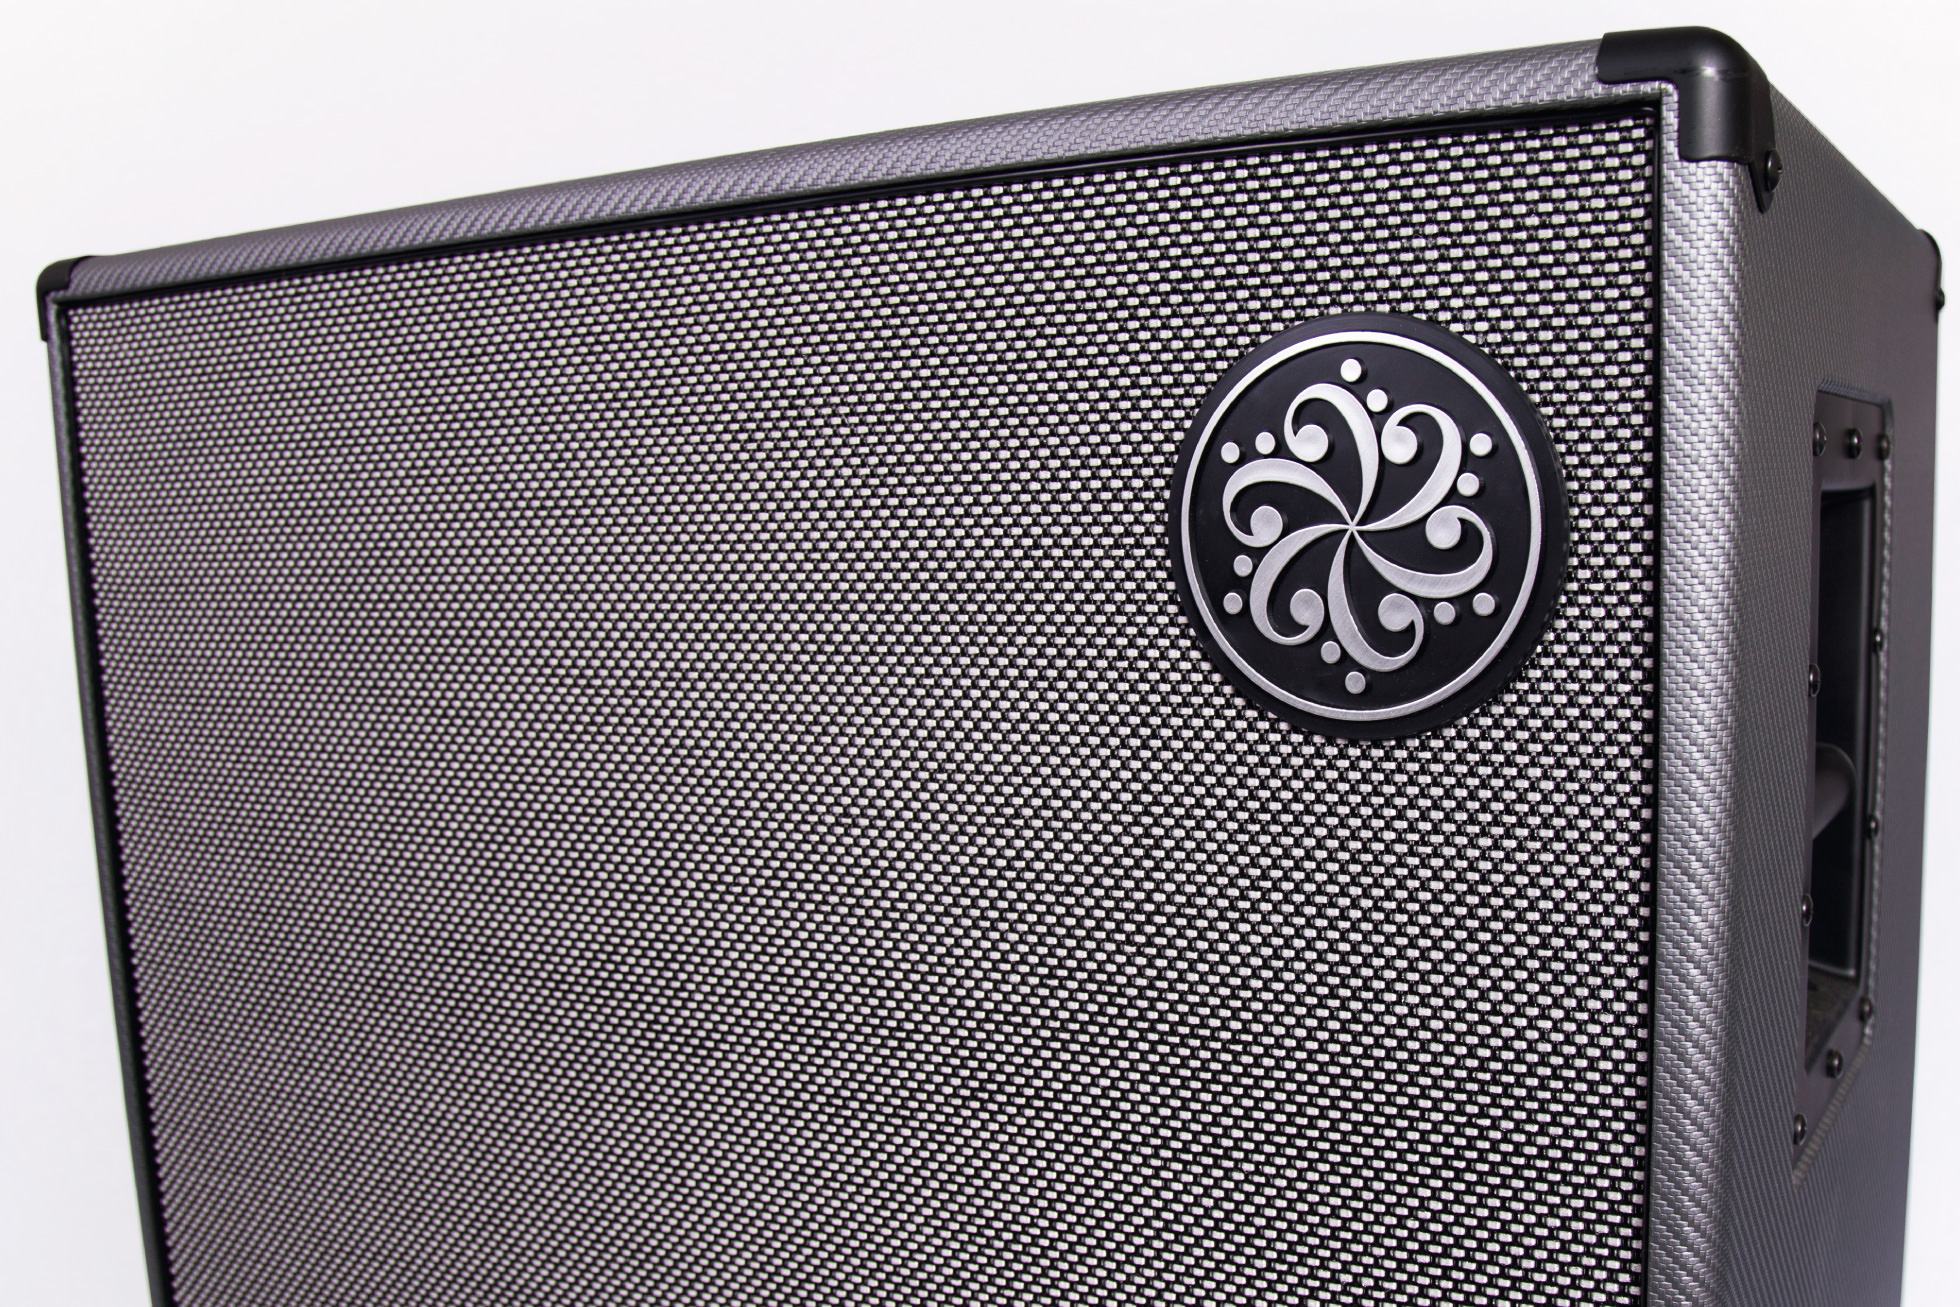 Dg410c Darkglass Electronics